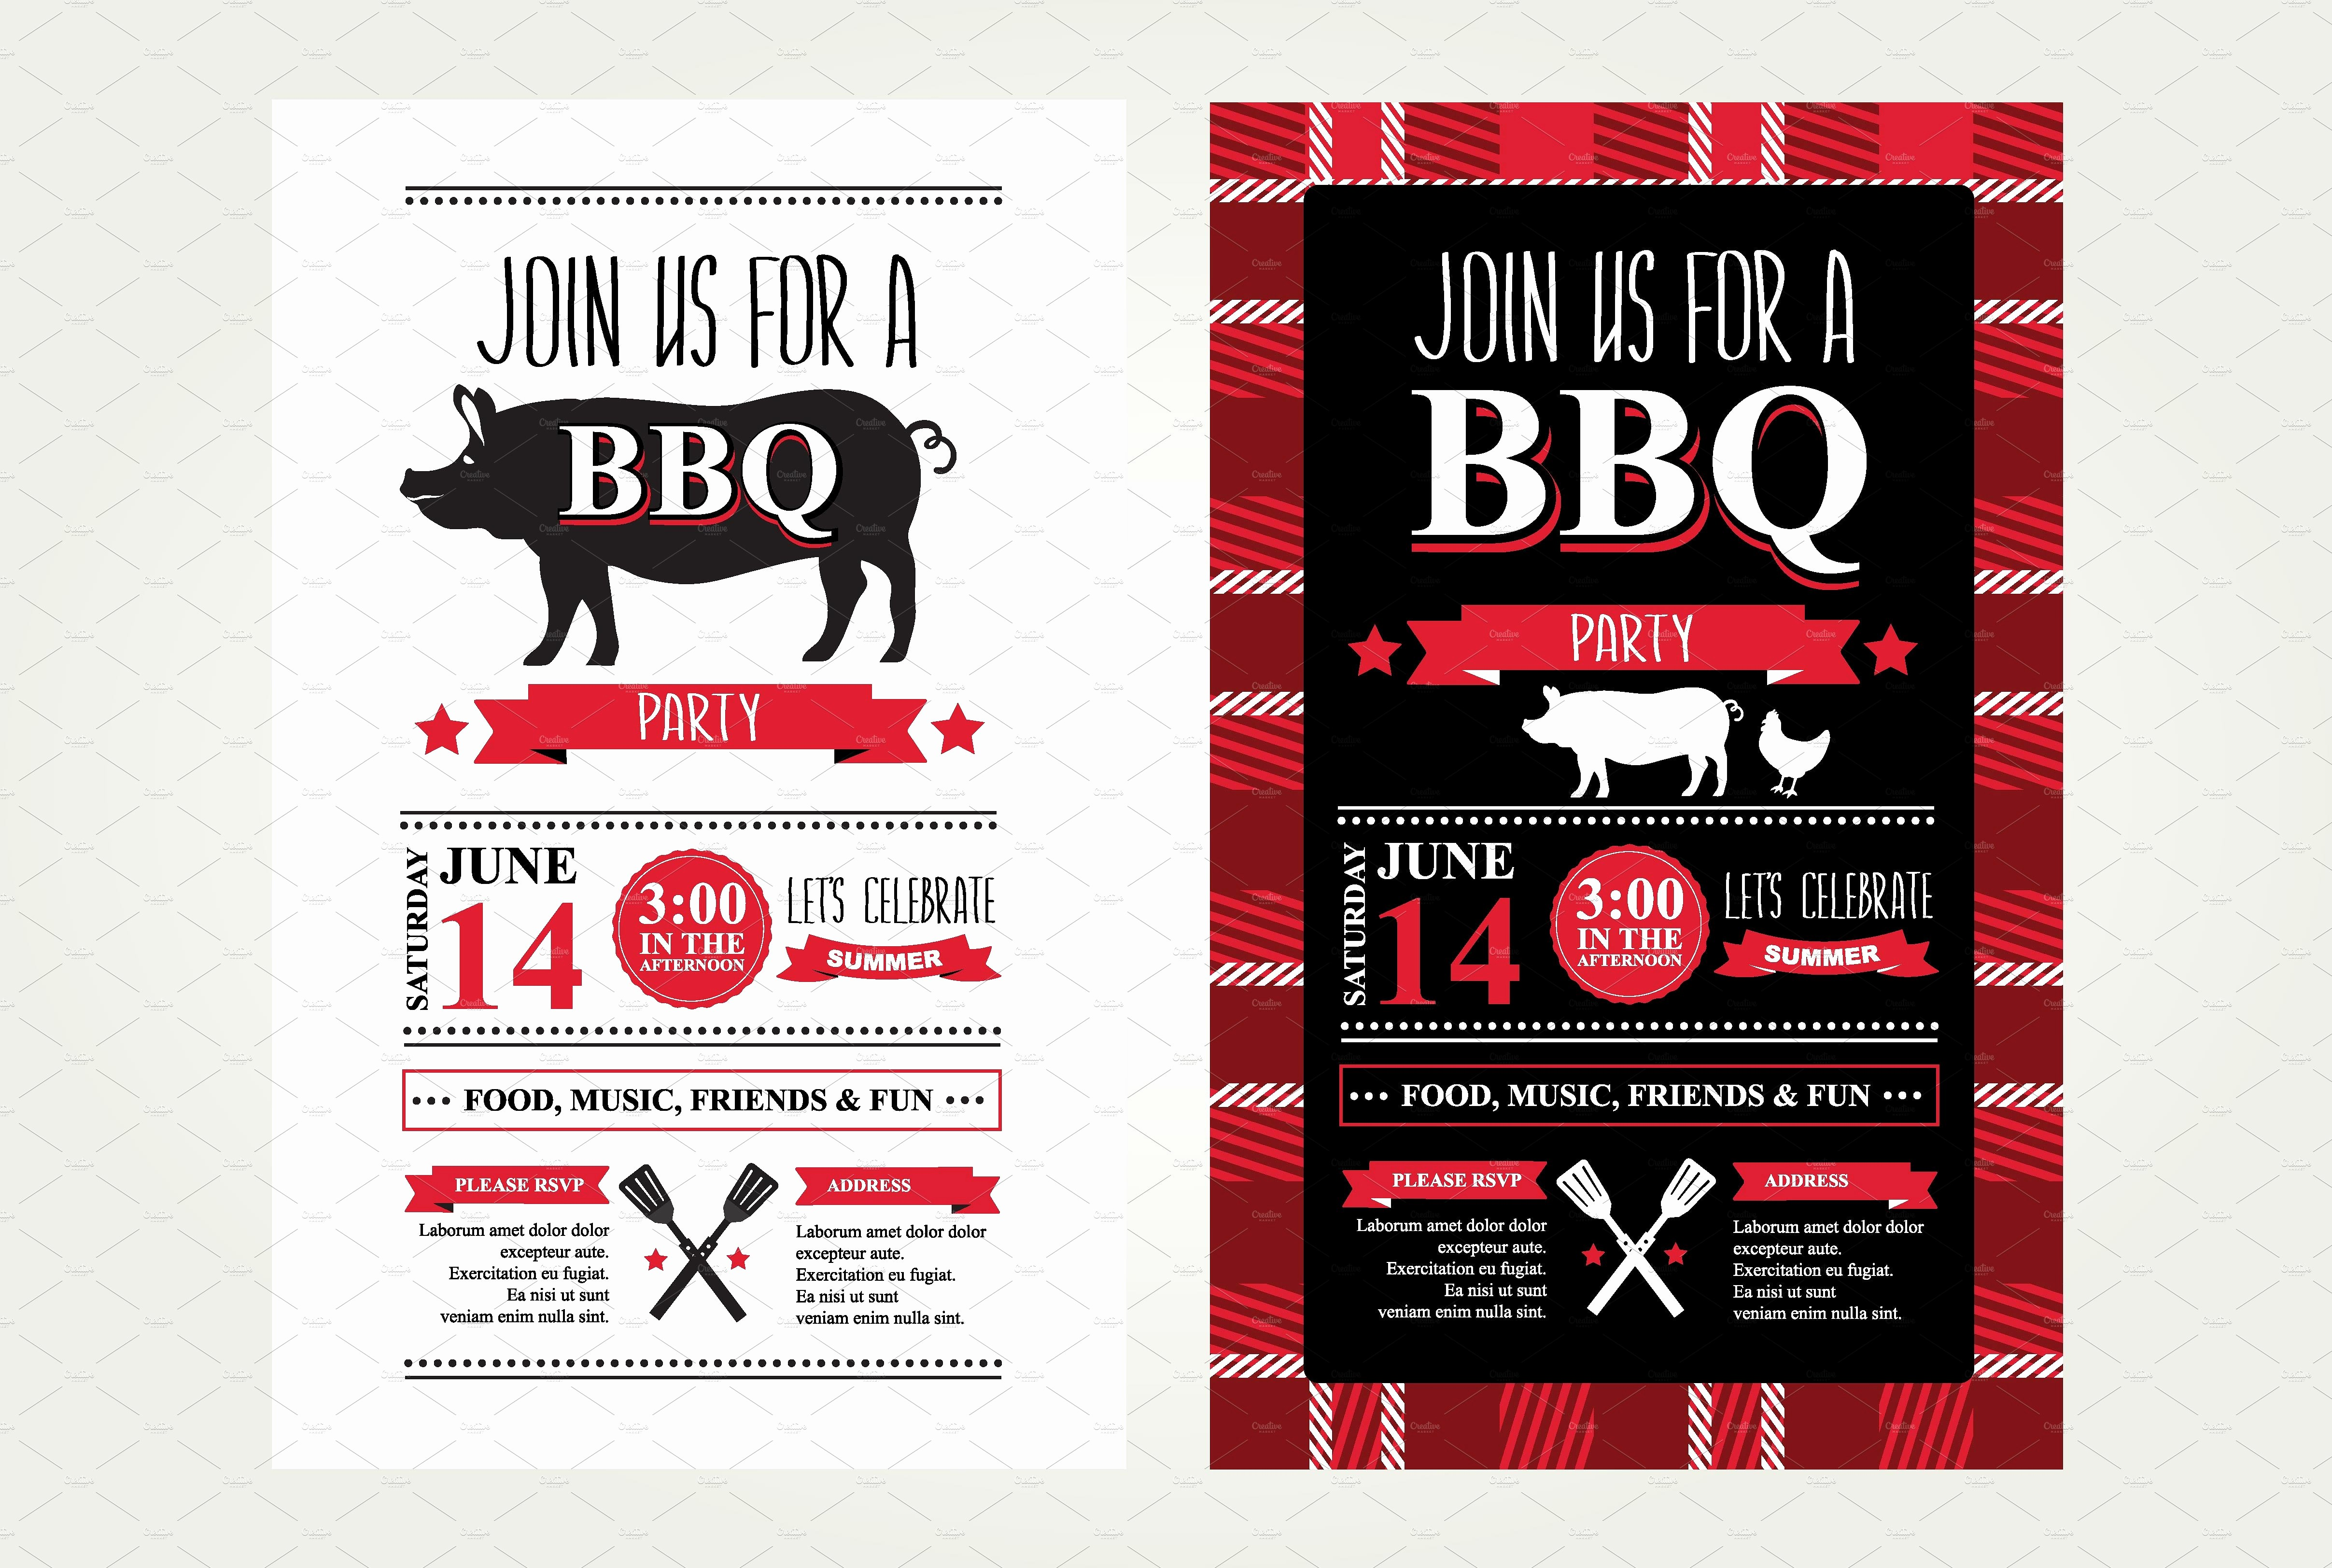 Bbq Party Invitation Templates Free Lovely 2 Barbecue Invitations Invitation Templates Creative